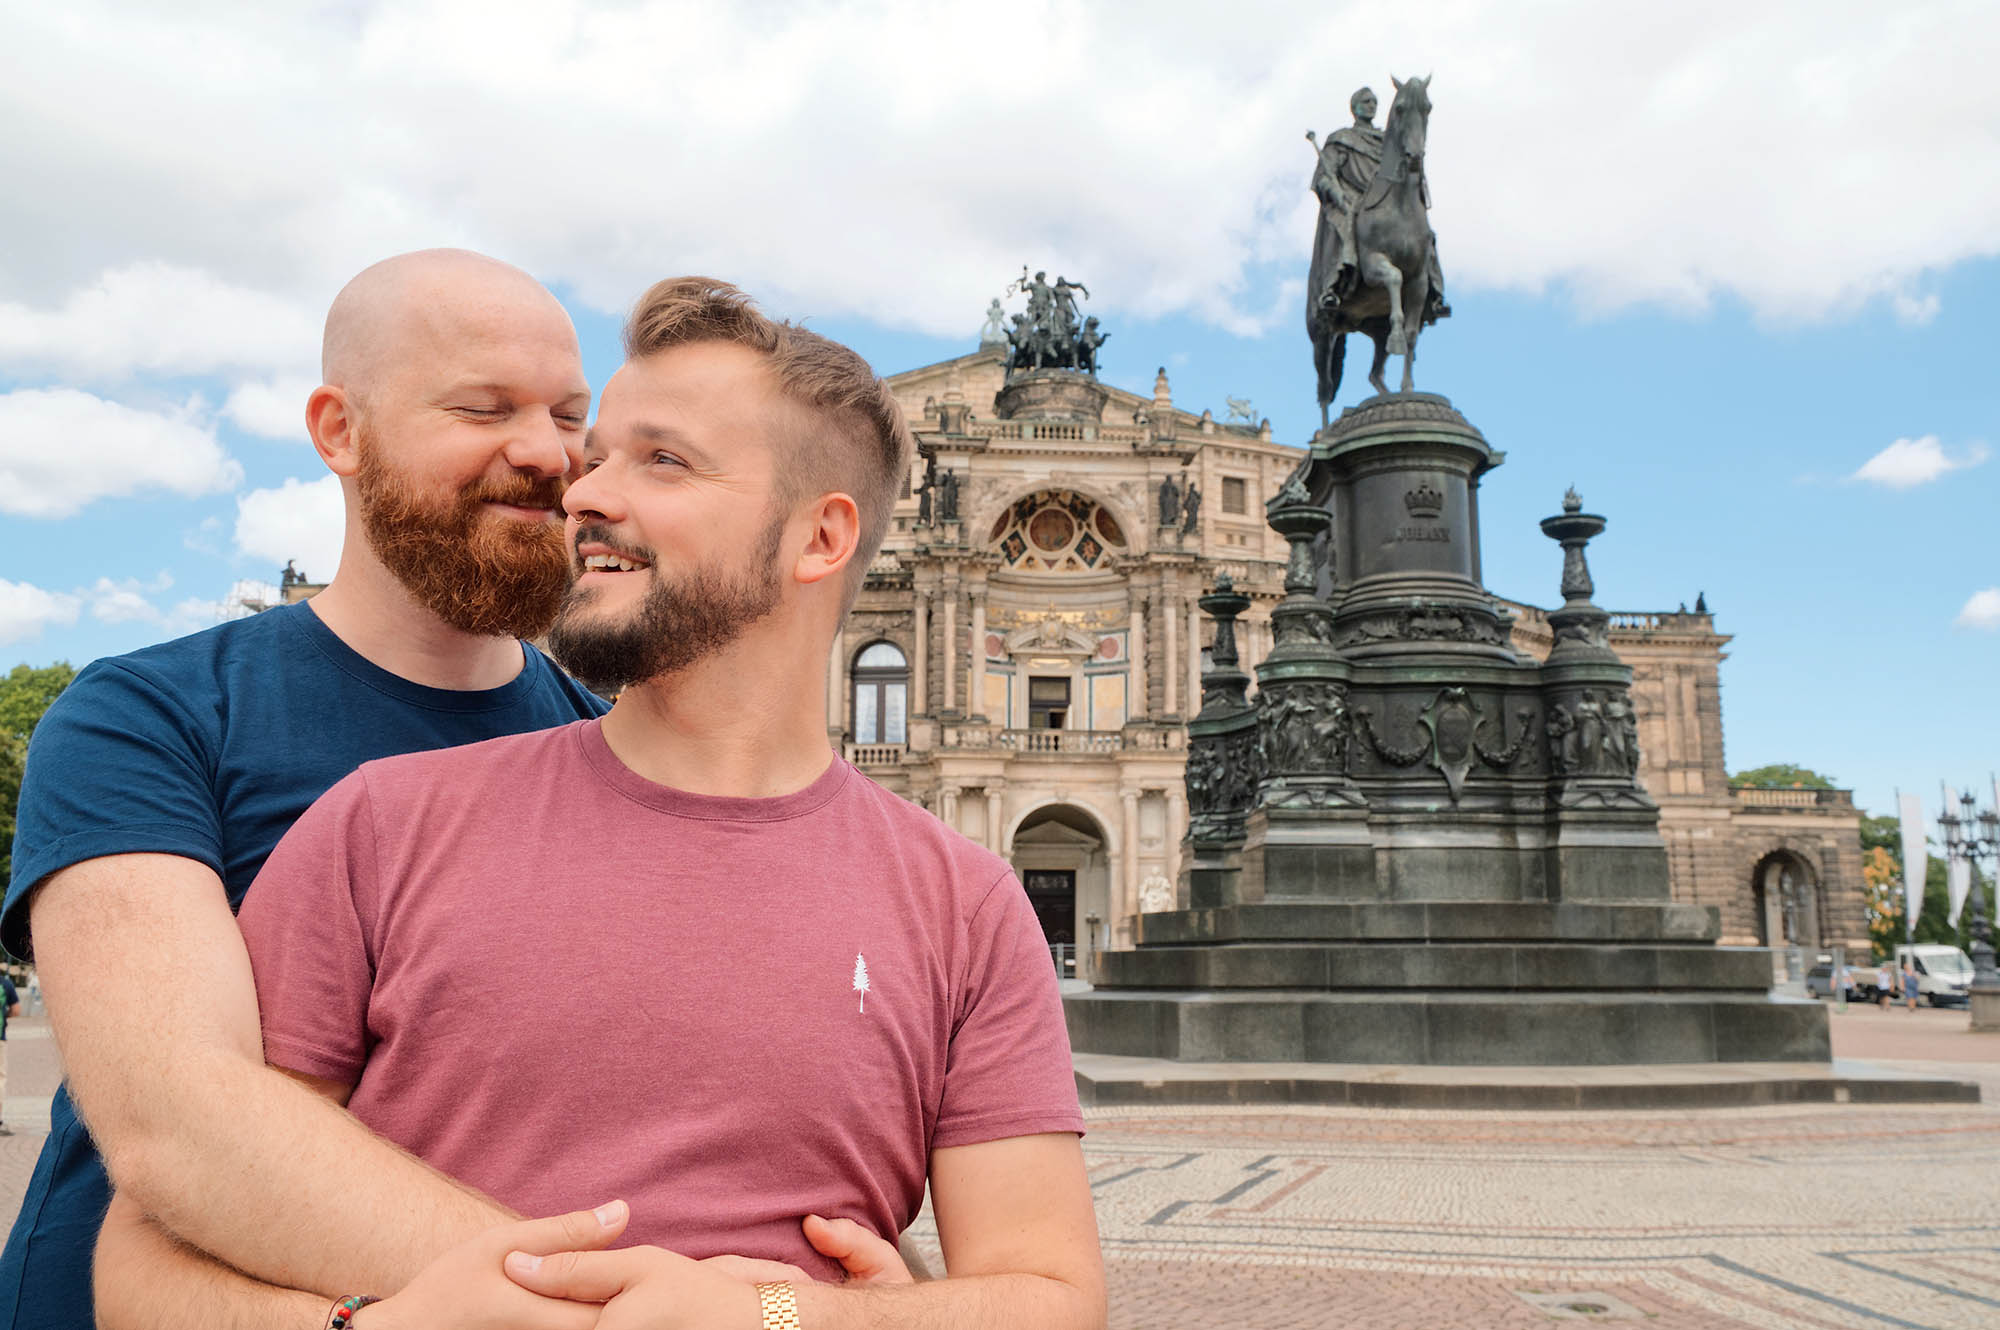 Dresden Gay City Trip: Gay Couple arm-in-arm in front of the Semper Opera © Coupleofmen.com